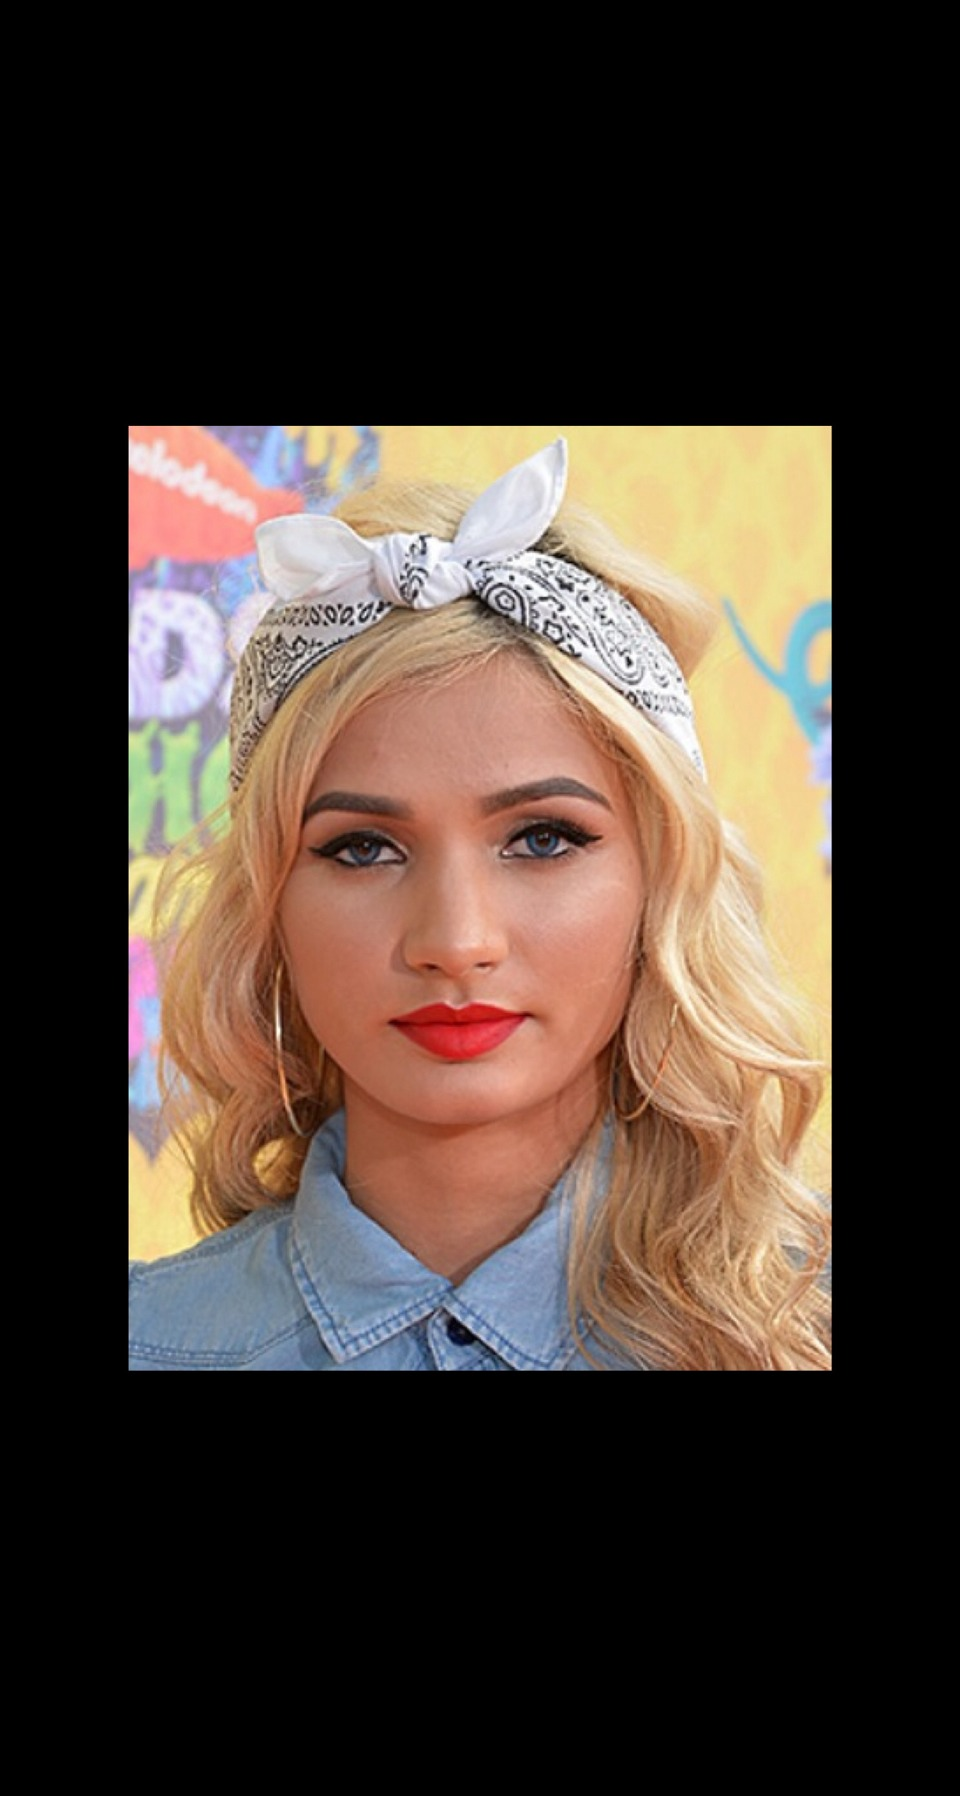 LAX BANDANA Pia Mia Perez tied back her perfectly-curled blonde hair with a chic white bandana.